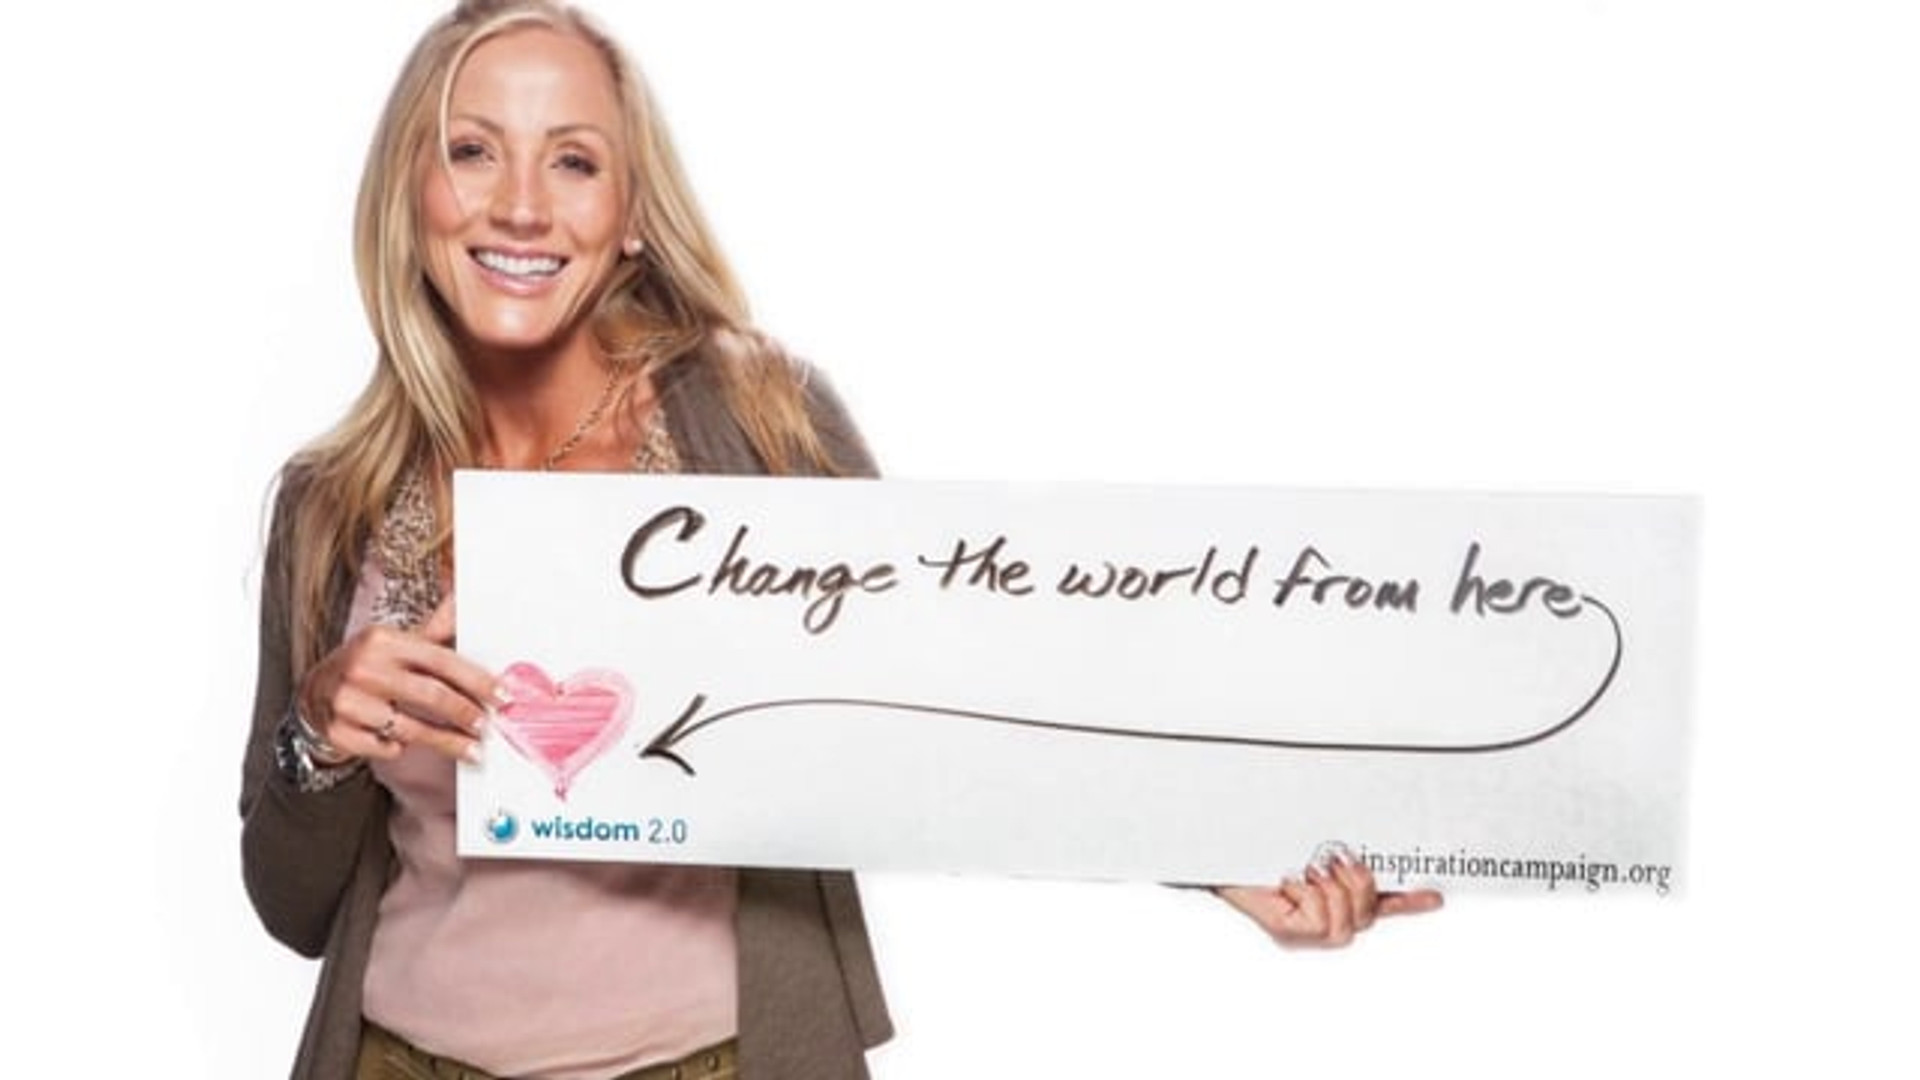 Inpiration Campaign - Crowd funding for positive media ads. What's your message event.